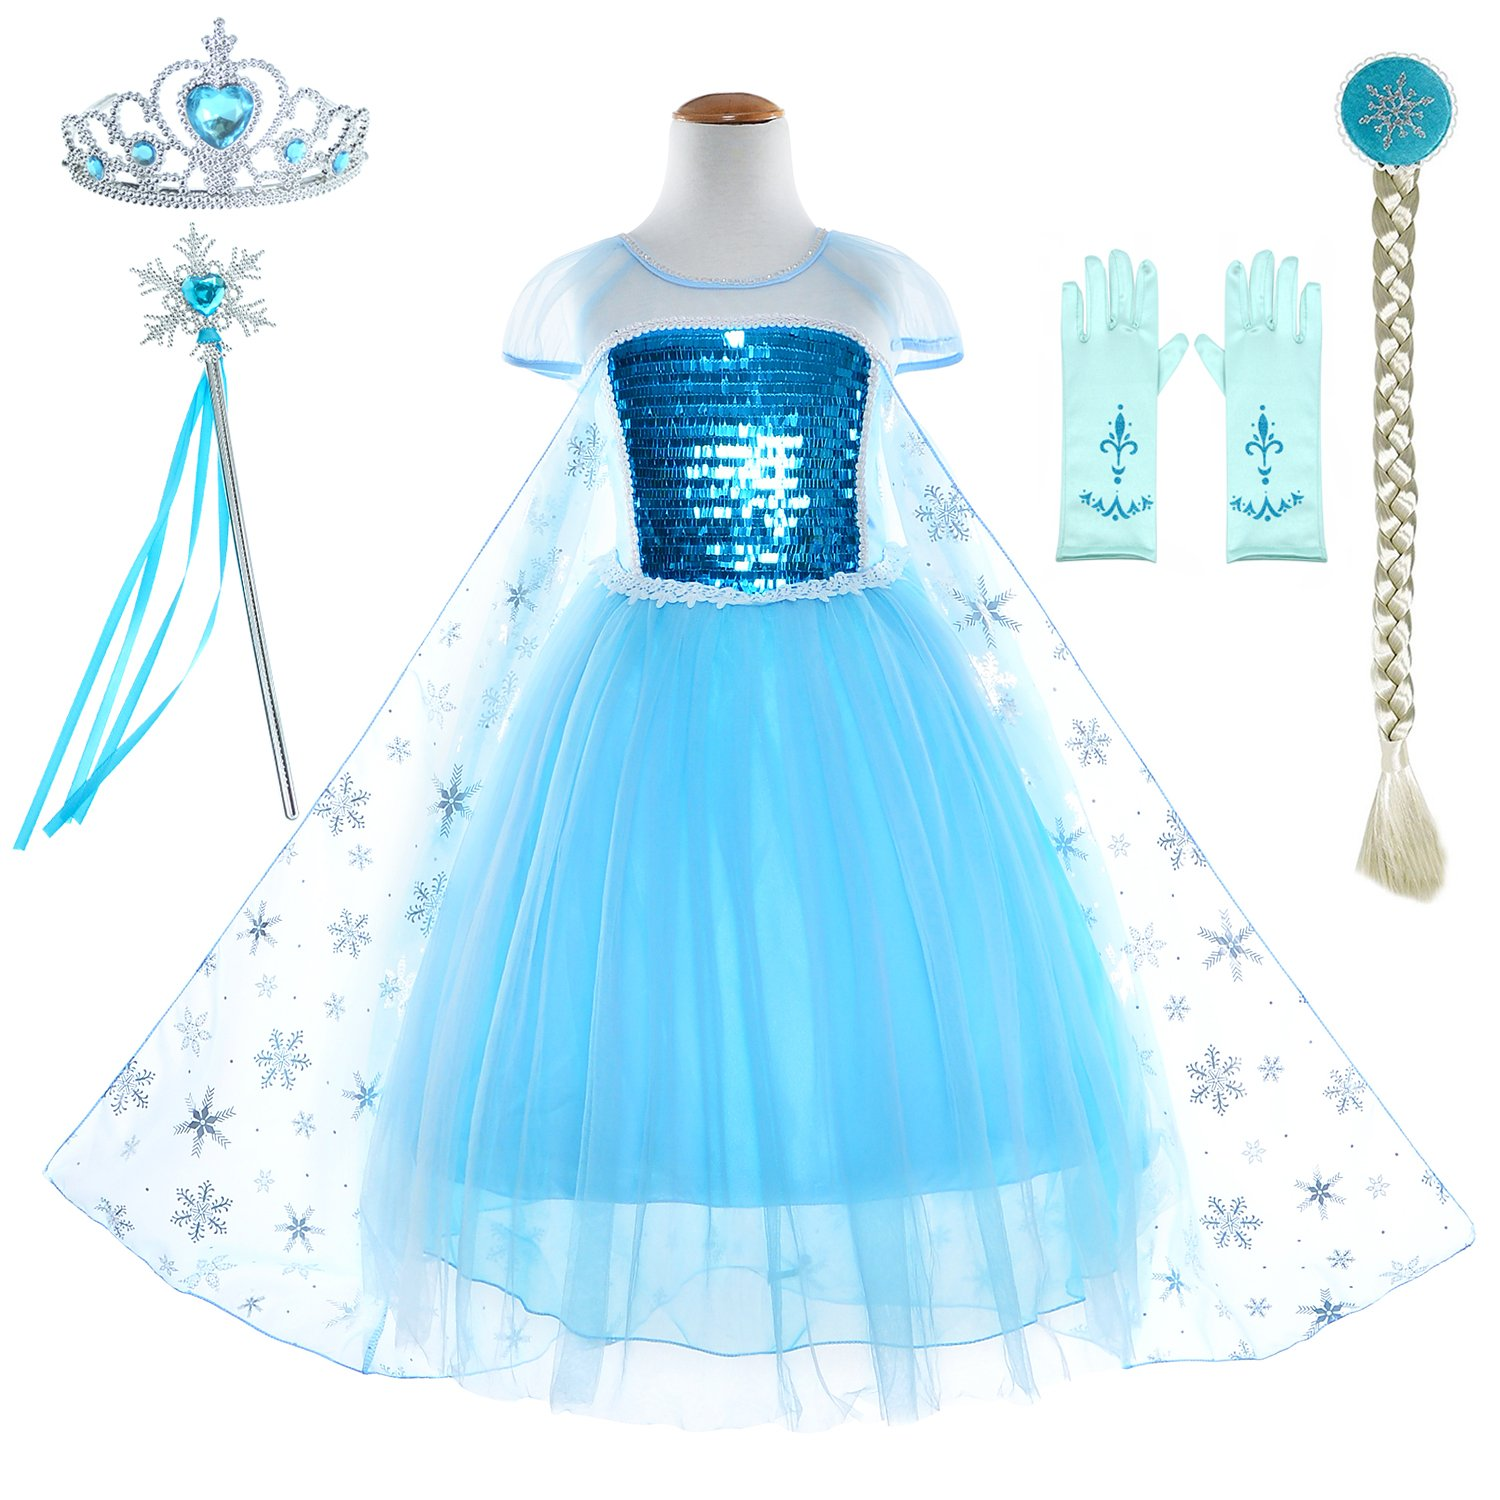 Snow Queen Princess Elsa Costumes Birthday Dress Up For Little Girls with Crown,Mace,Gloves Accessories 2-3 Years(100cm)